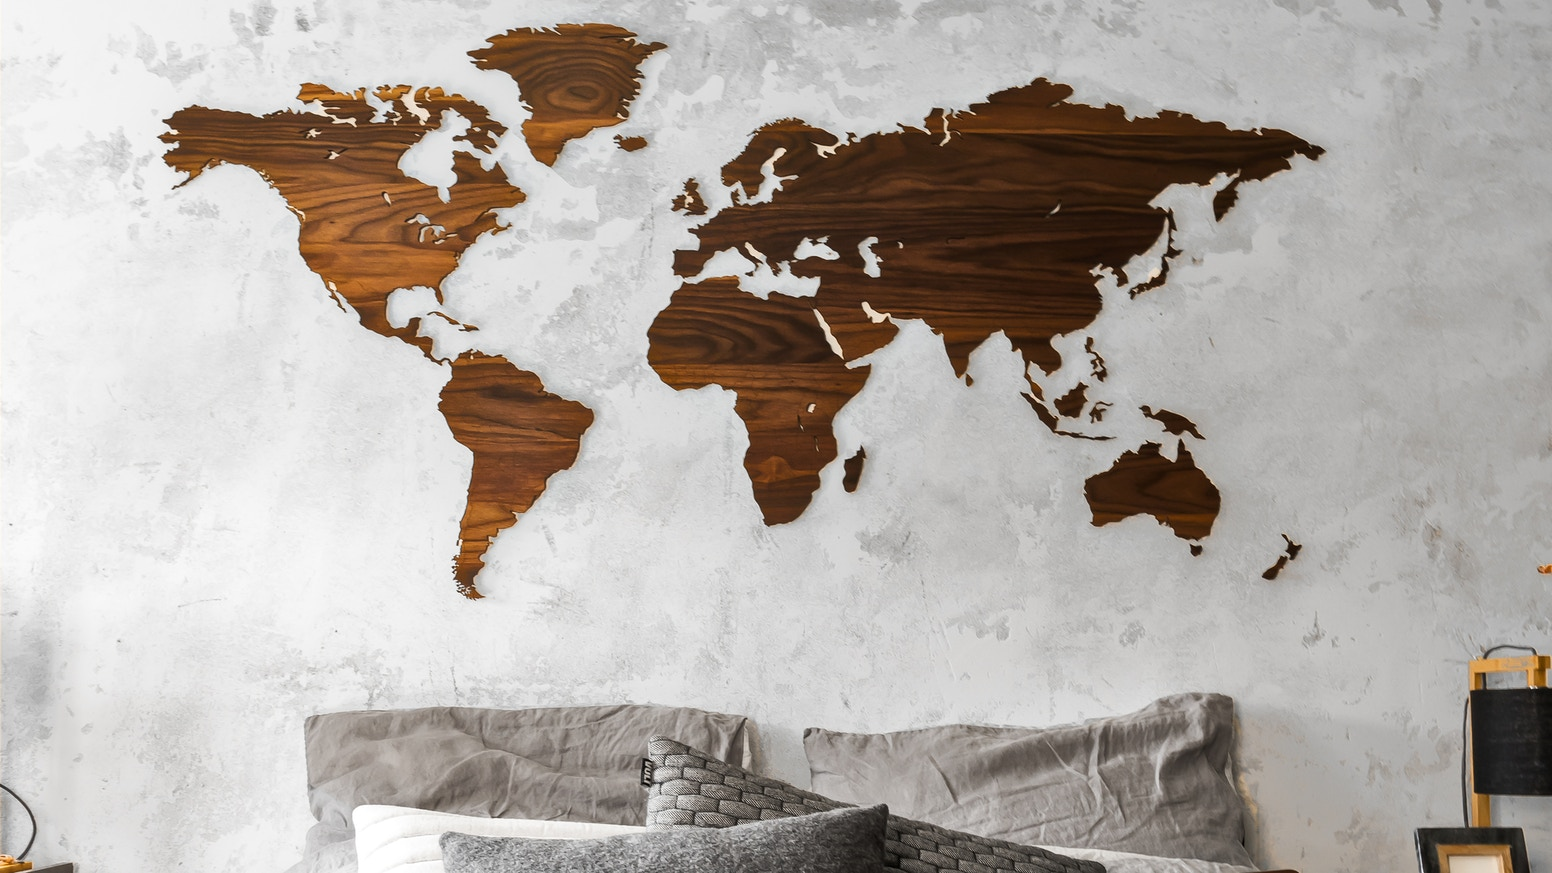 My Wooden World Luxurious Wooden World Maps By Maarten Van Rooyen